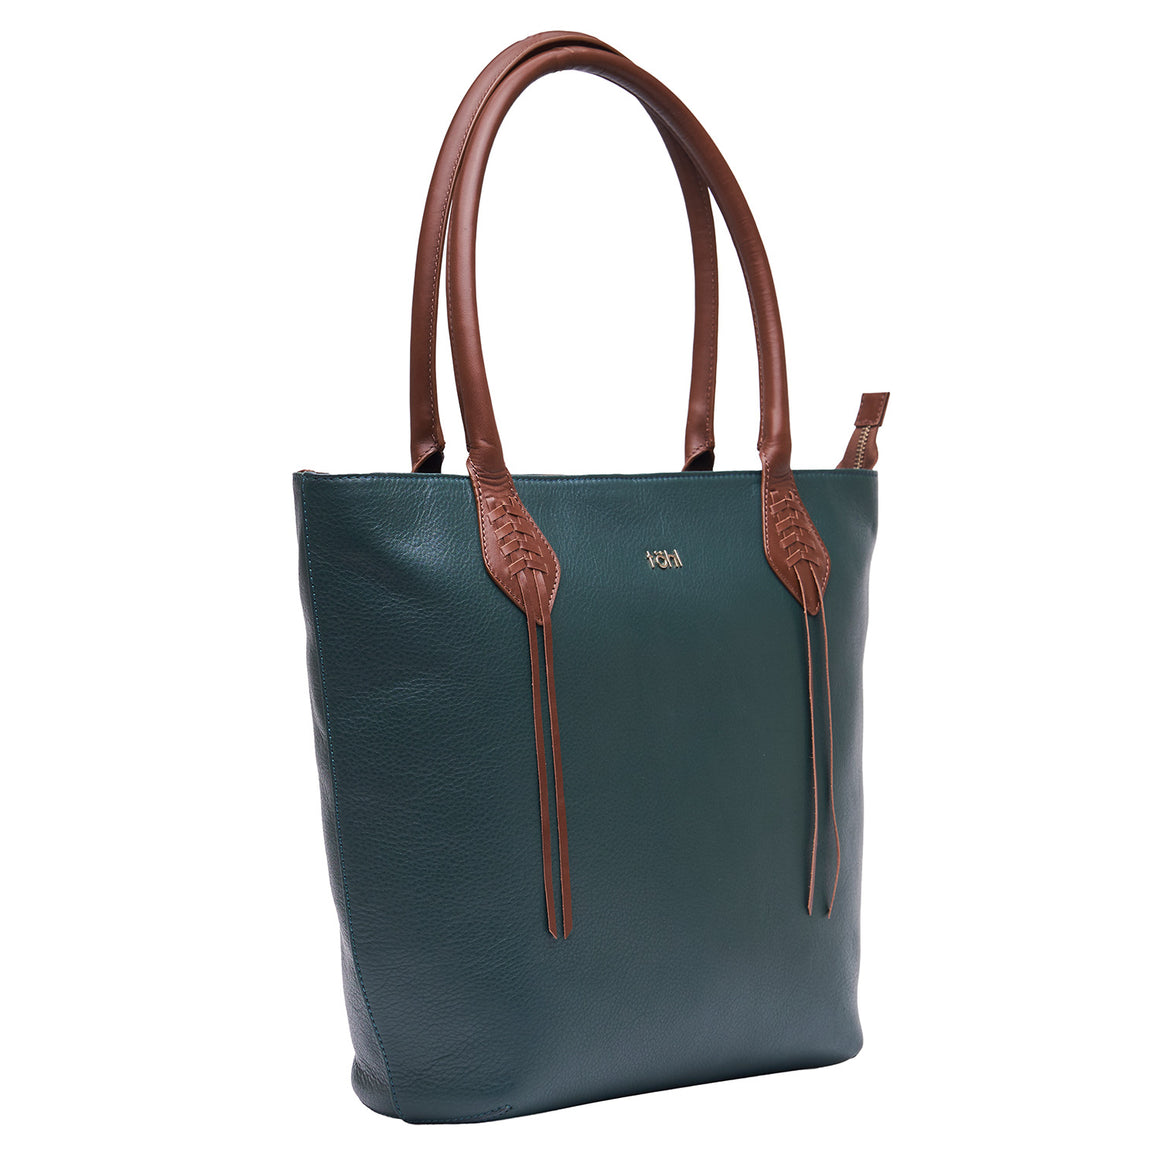 TT 0009 - TOHL KIFFEN WOMEN'S TOTE BAG - FOREST GREEN